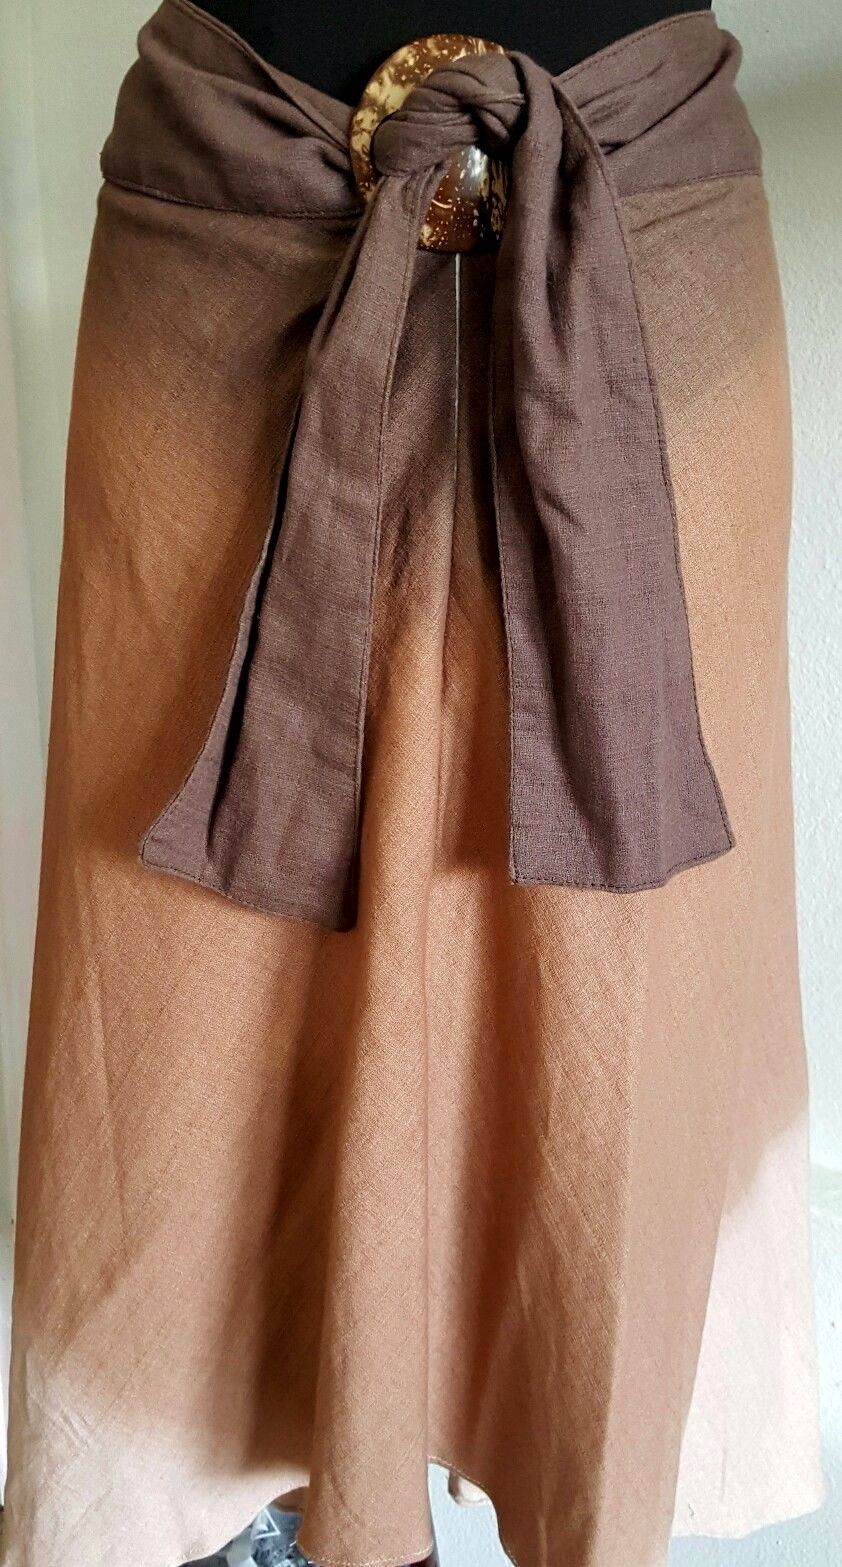 Sarong Skirt Brown Orange Cream Dress Zips Shell Closure Porn Boutique Size 30